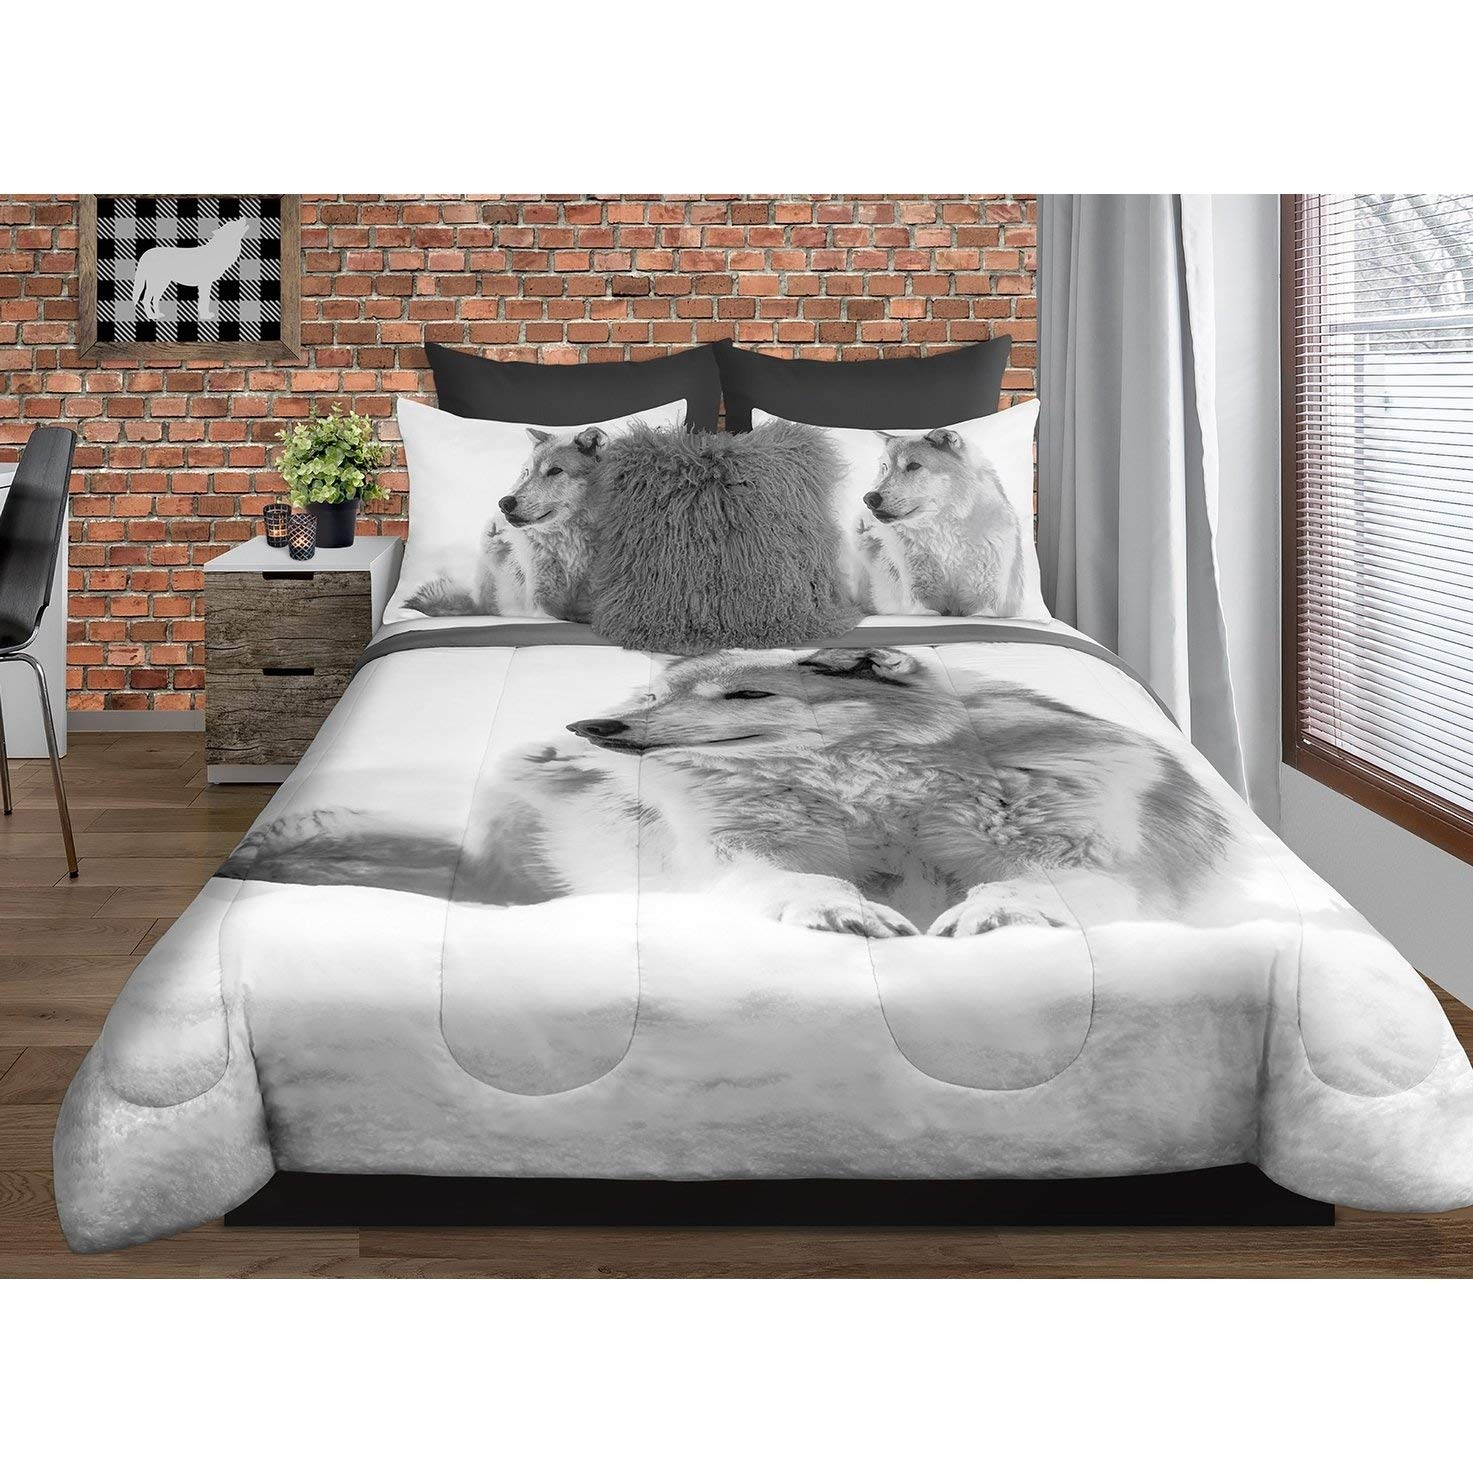 3 Piece White Grey Wolf Comforter King Size Snow Wolf Bedding Set Wild Outdoor Animal Themed Polyester